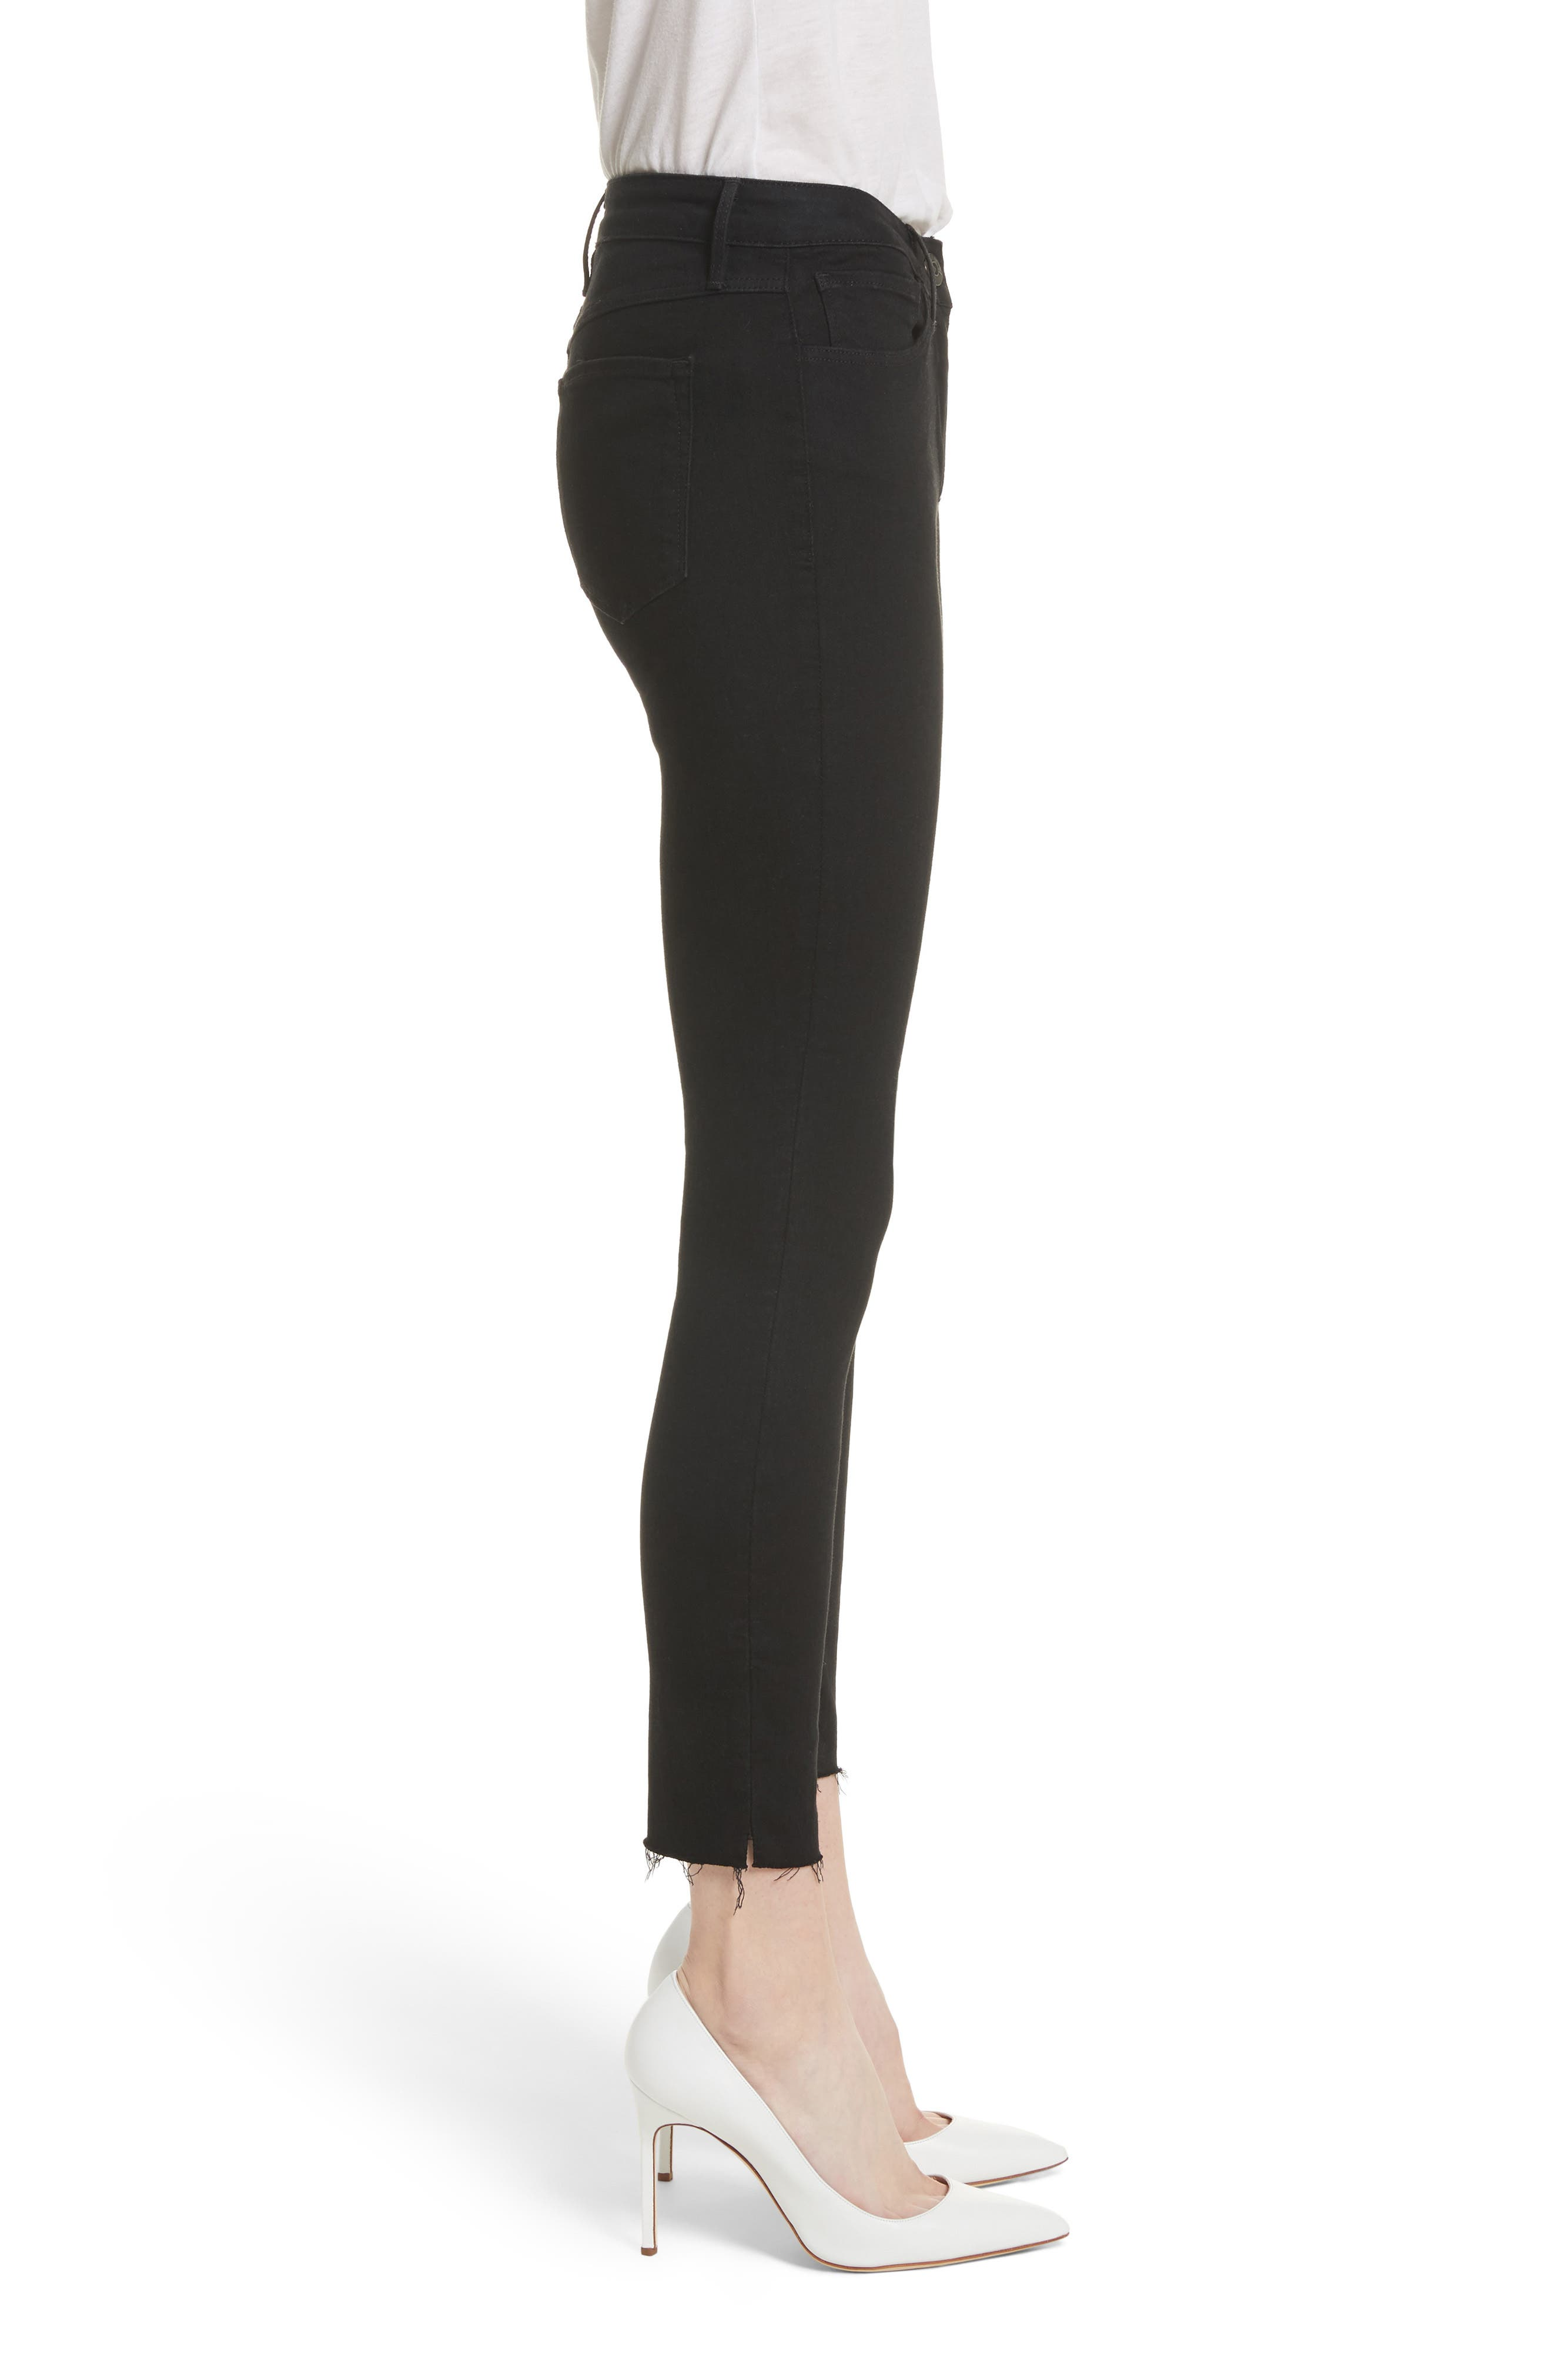 W2 Crop Skinny Jeans,                             Alternate thumbnail 3, color,                             BLACK TEAR